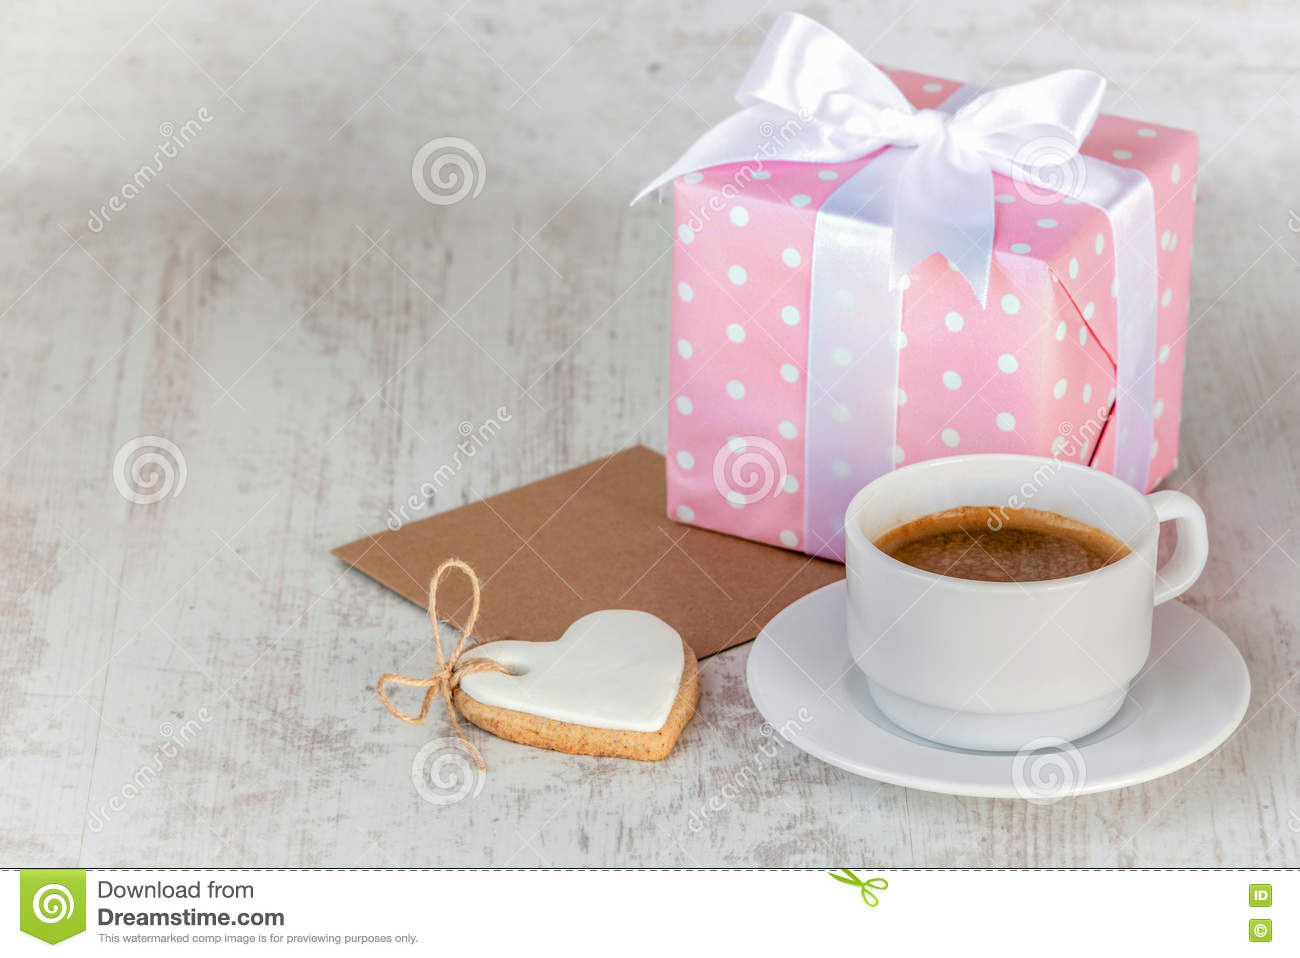 Download Gift Box Wrapped In Pink Dotted Paper, Heart Shaped Love Cookie, A Cup Of Coffee And An Empty Kraft Card Over A White Wood Backgro Stock Photo - Image of message, baby: 81533188